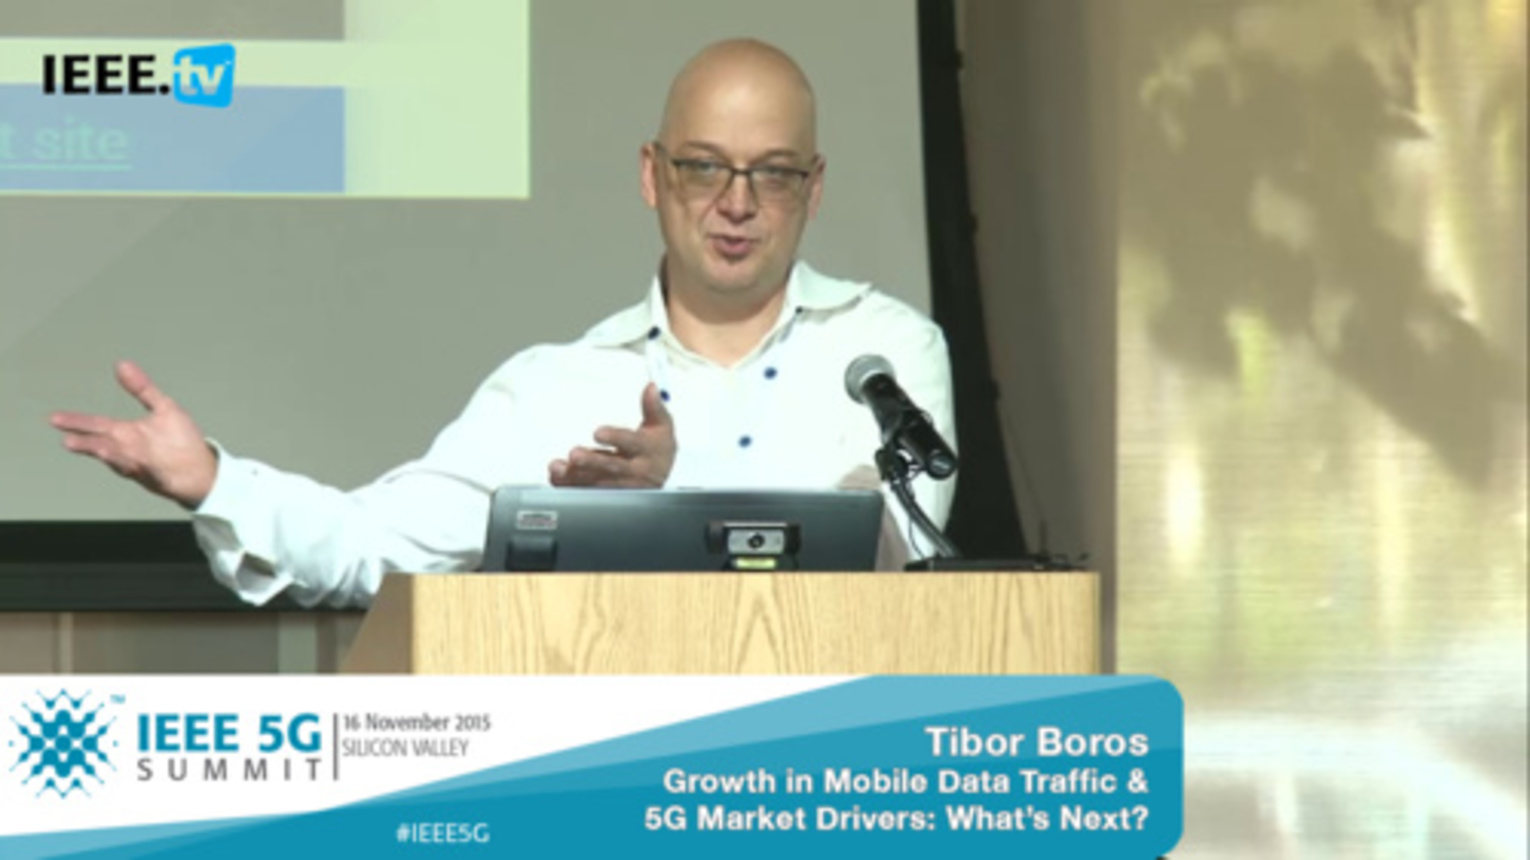 Silicon Valley 5G Summit 2015 - Tibor Boros - Growth in Mobile Data Traffic and 5G Market Drivers: What's the Next Step?